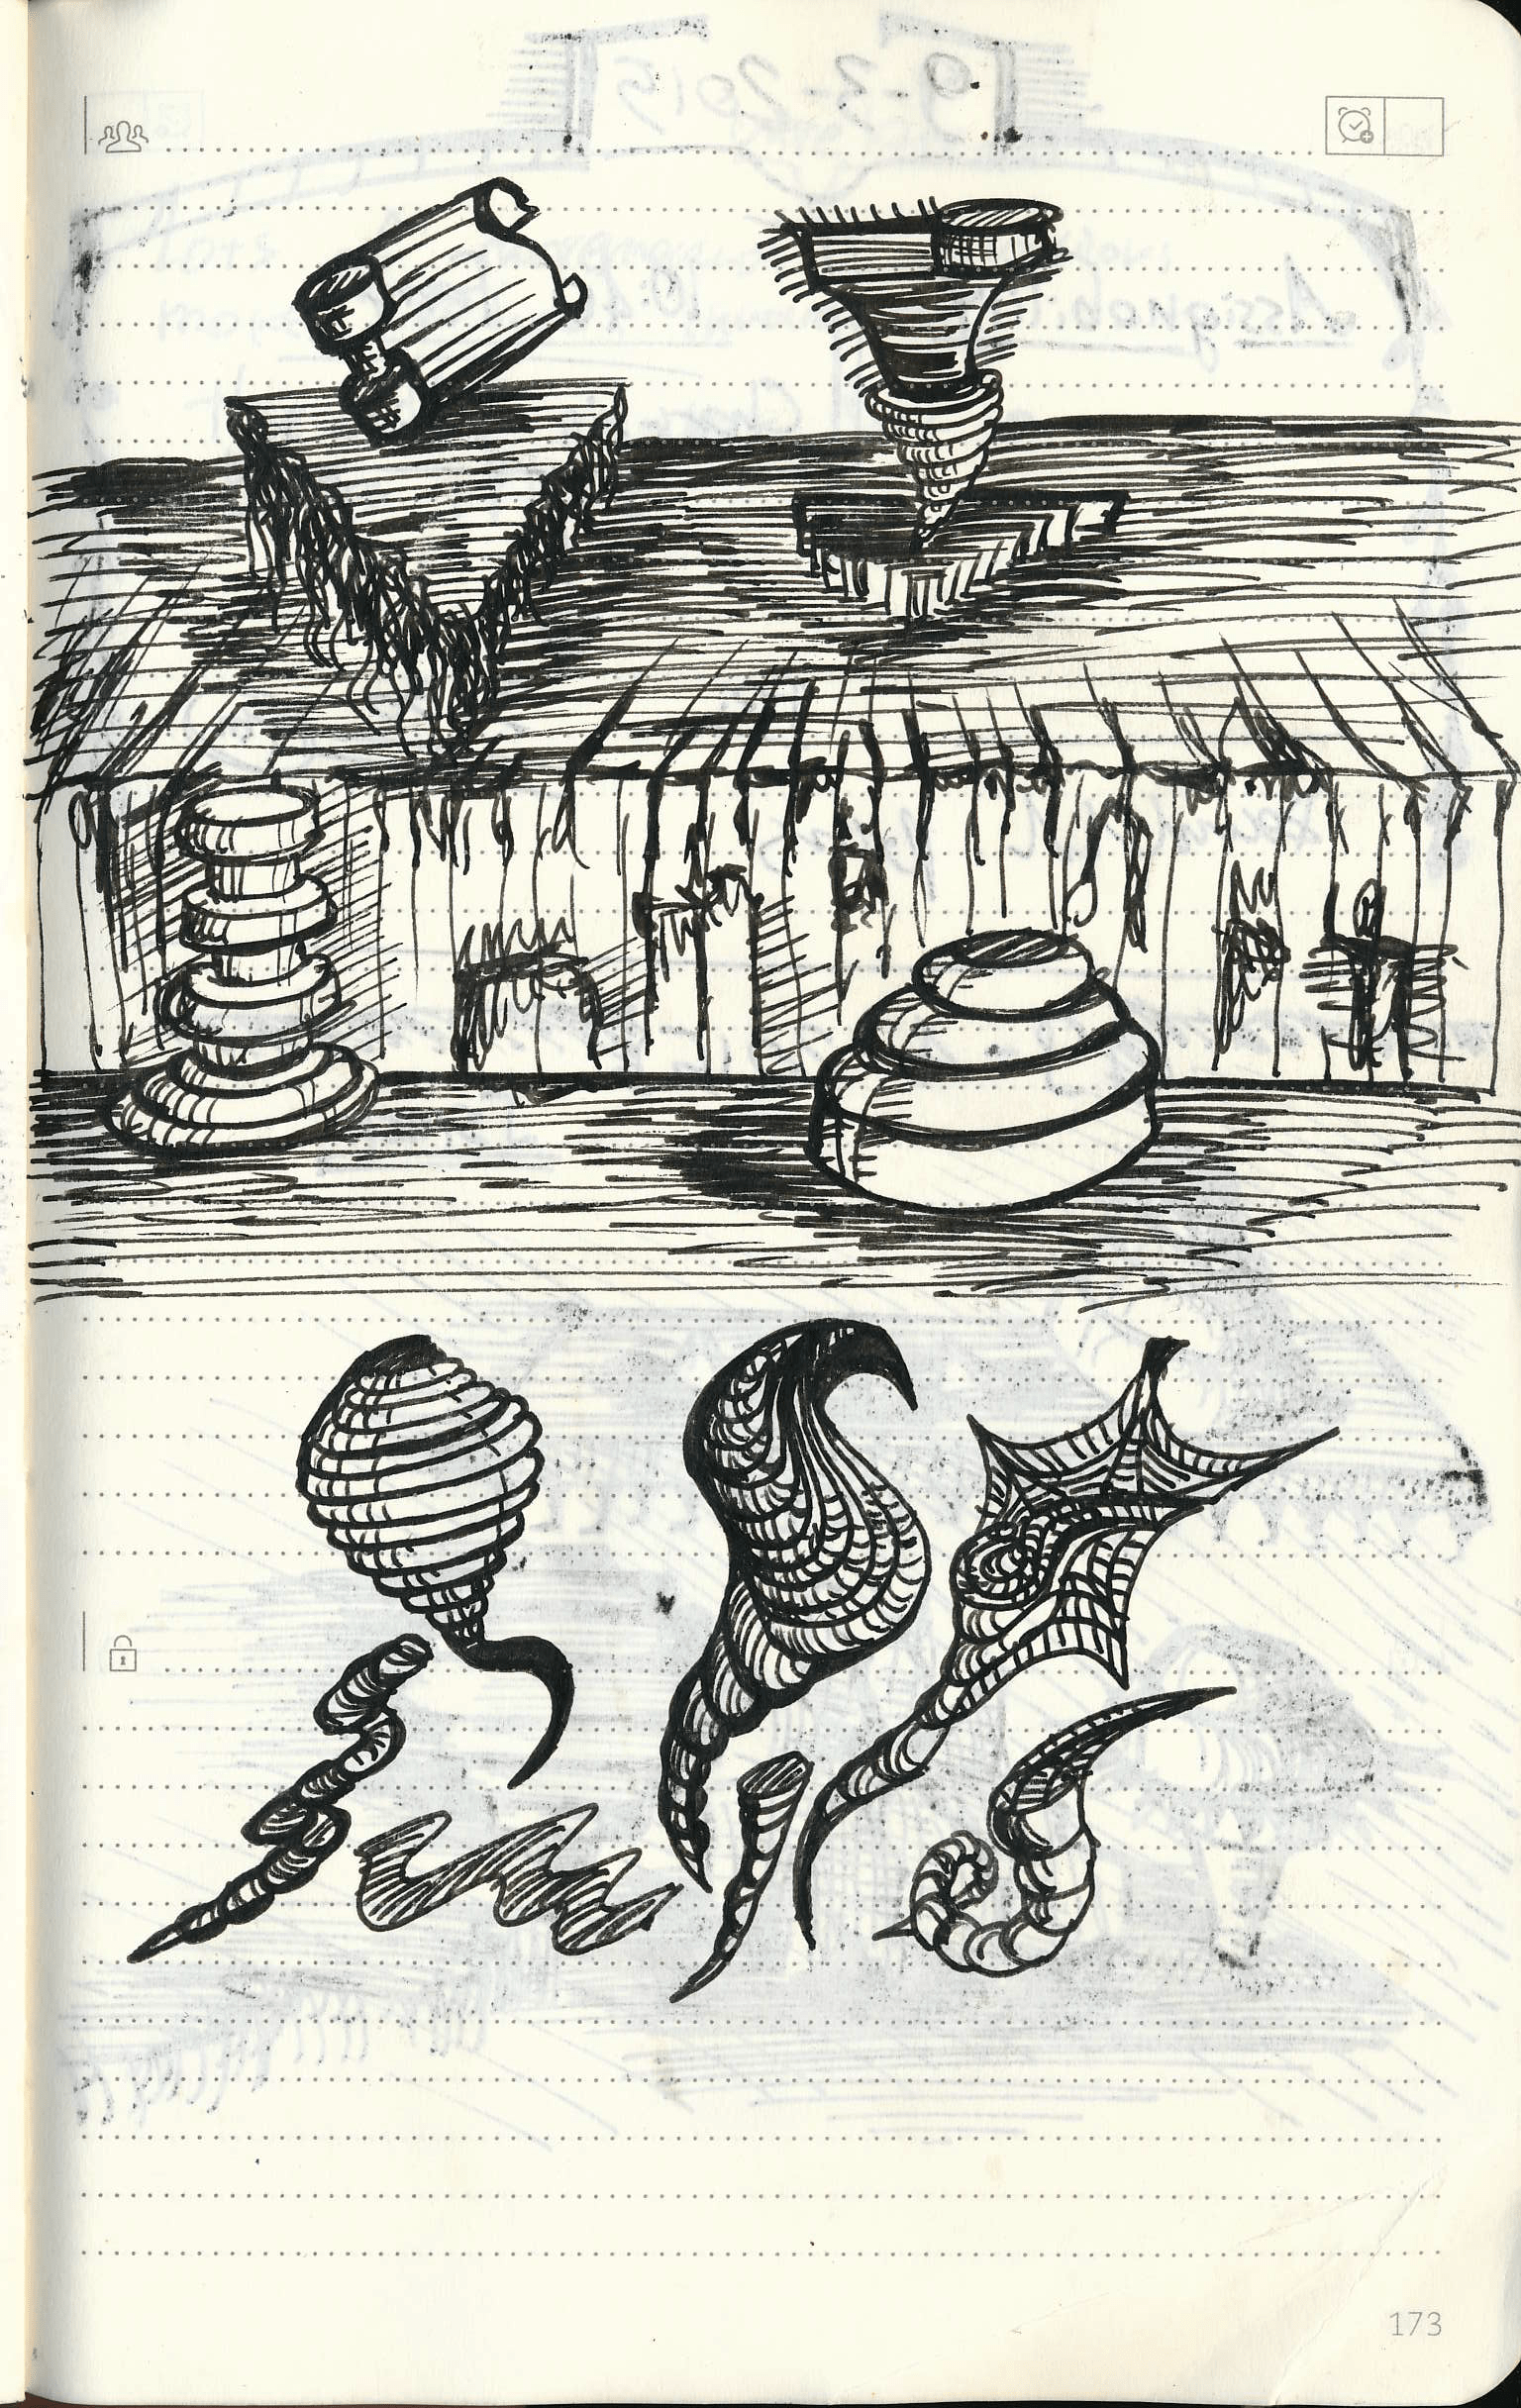 somedoodles Doodle Tuesday: Artifacts doodle art